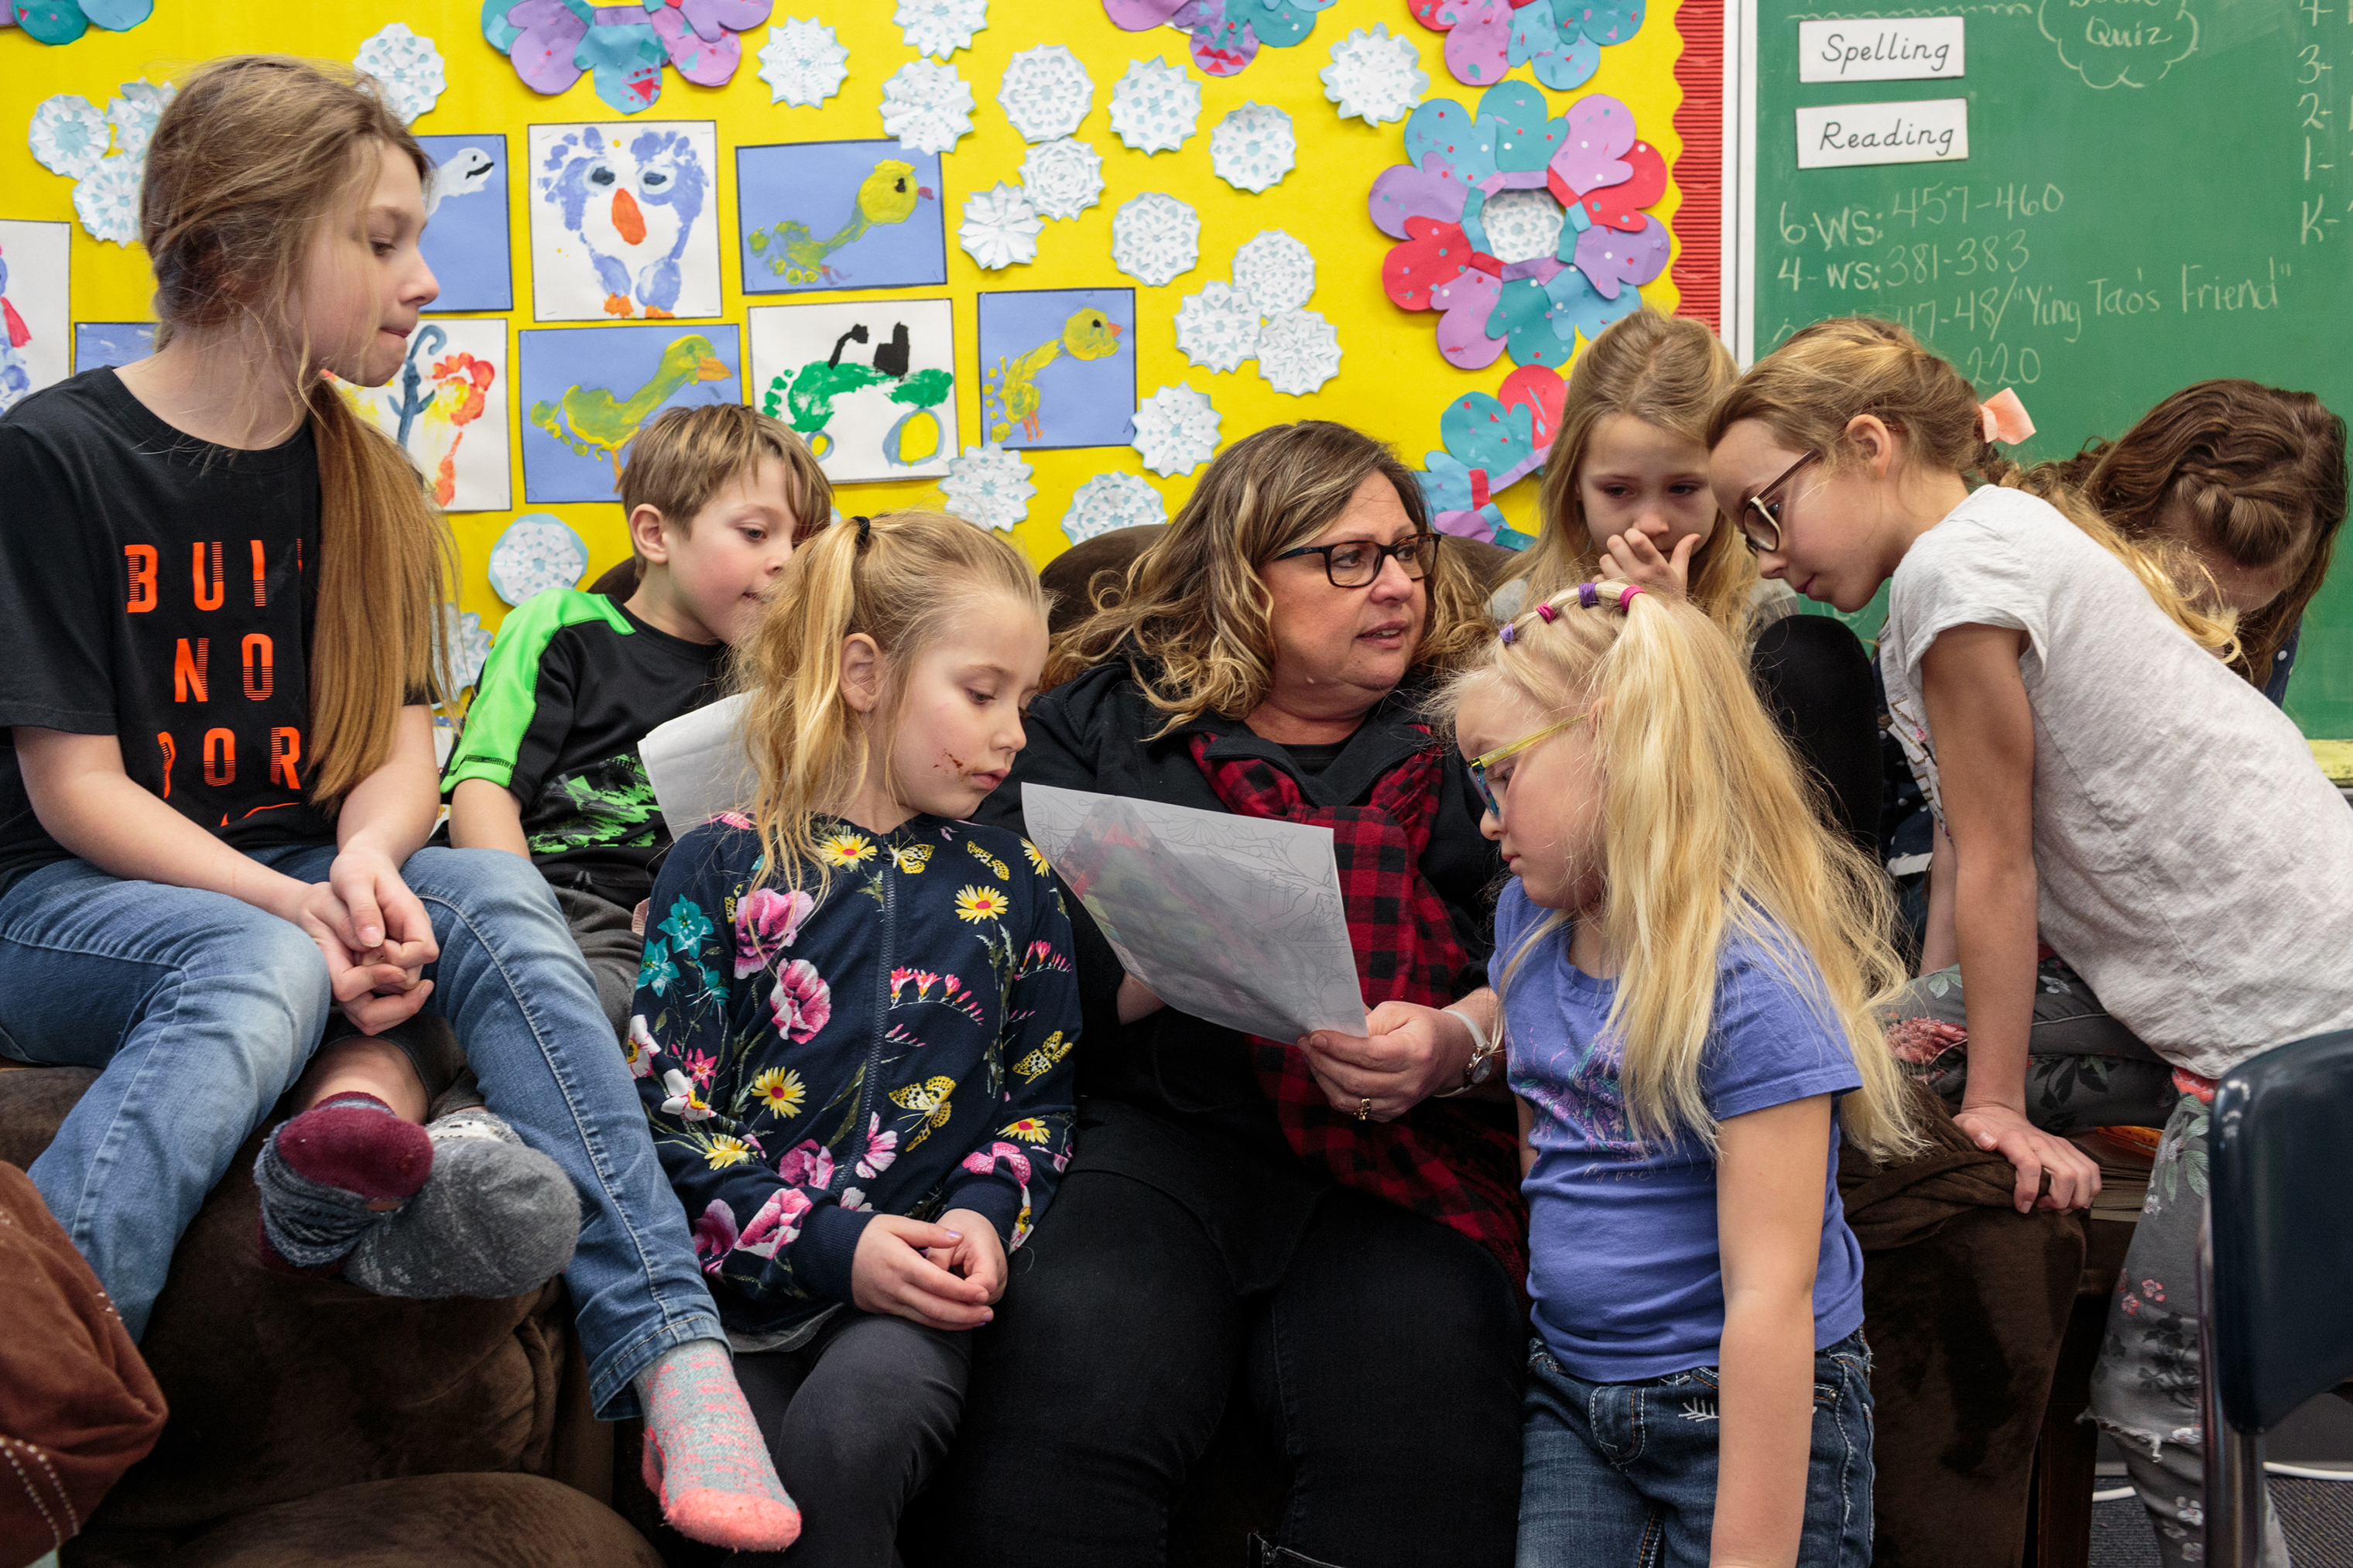 Linda Lamie, the teacher at Angle Inlet School, sits with her students while they show her their drawings and artwork.